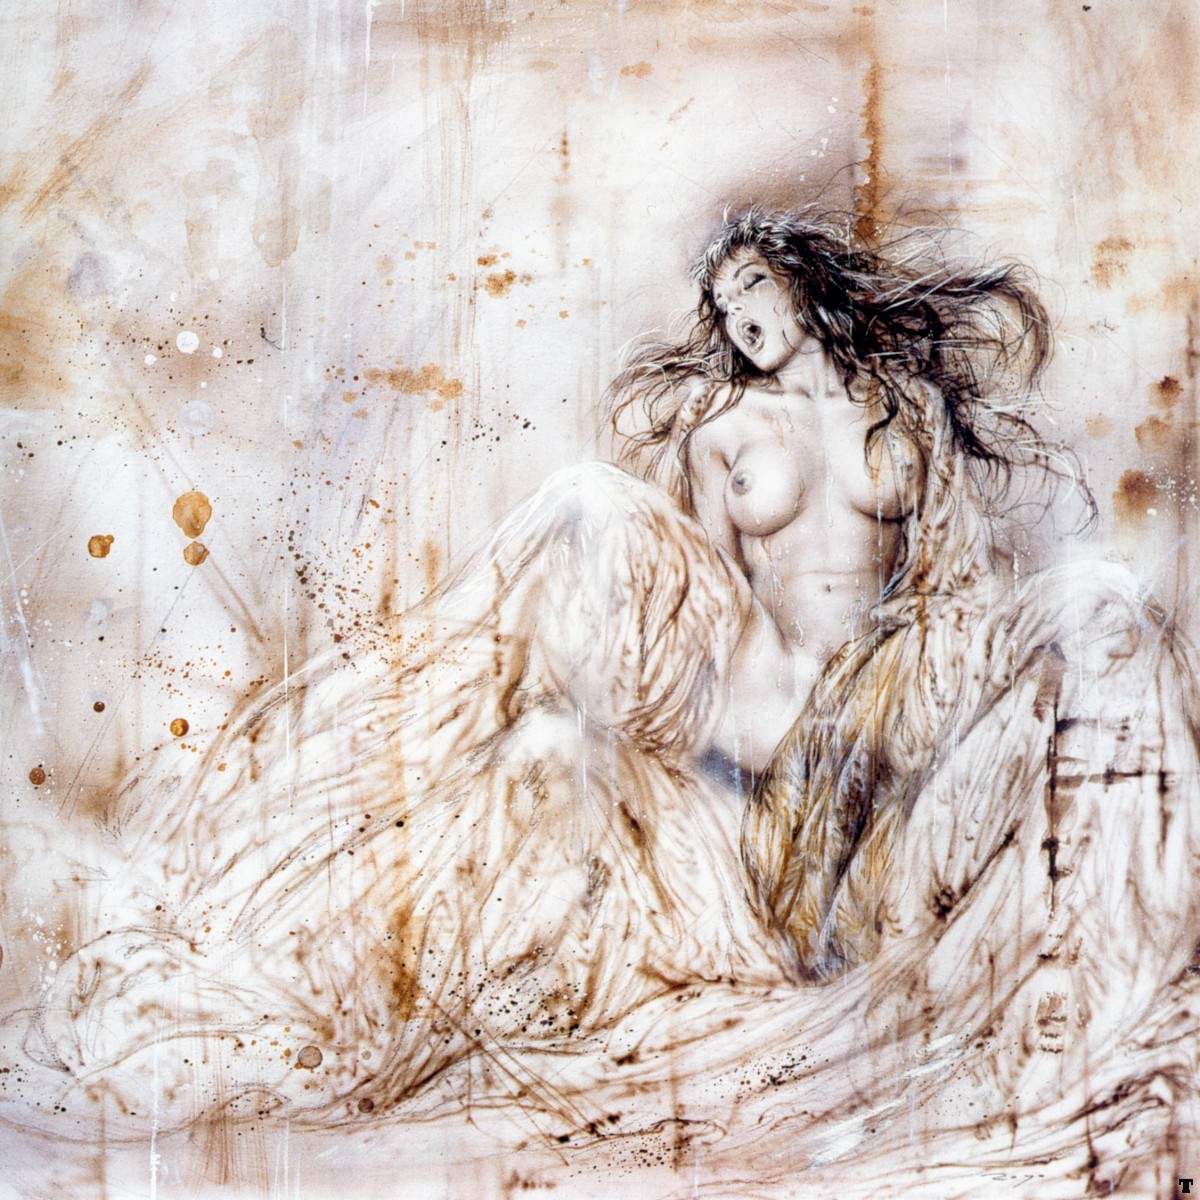 Luis prohibited royo art Fantasy